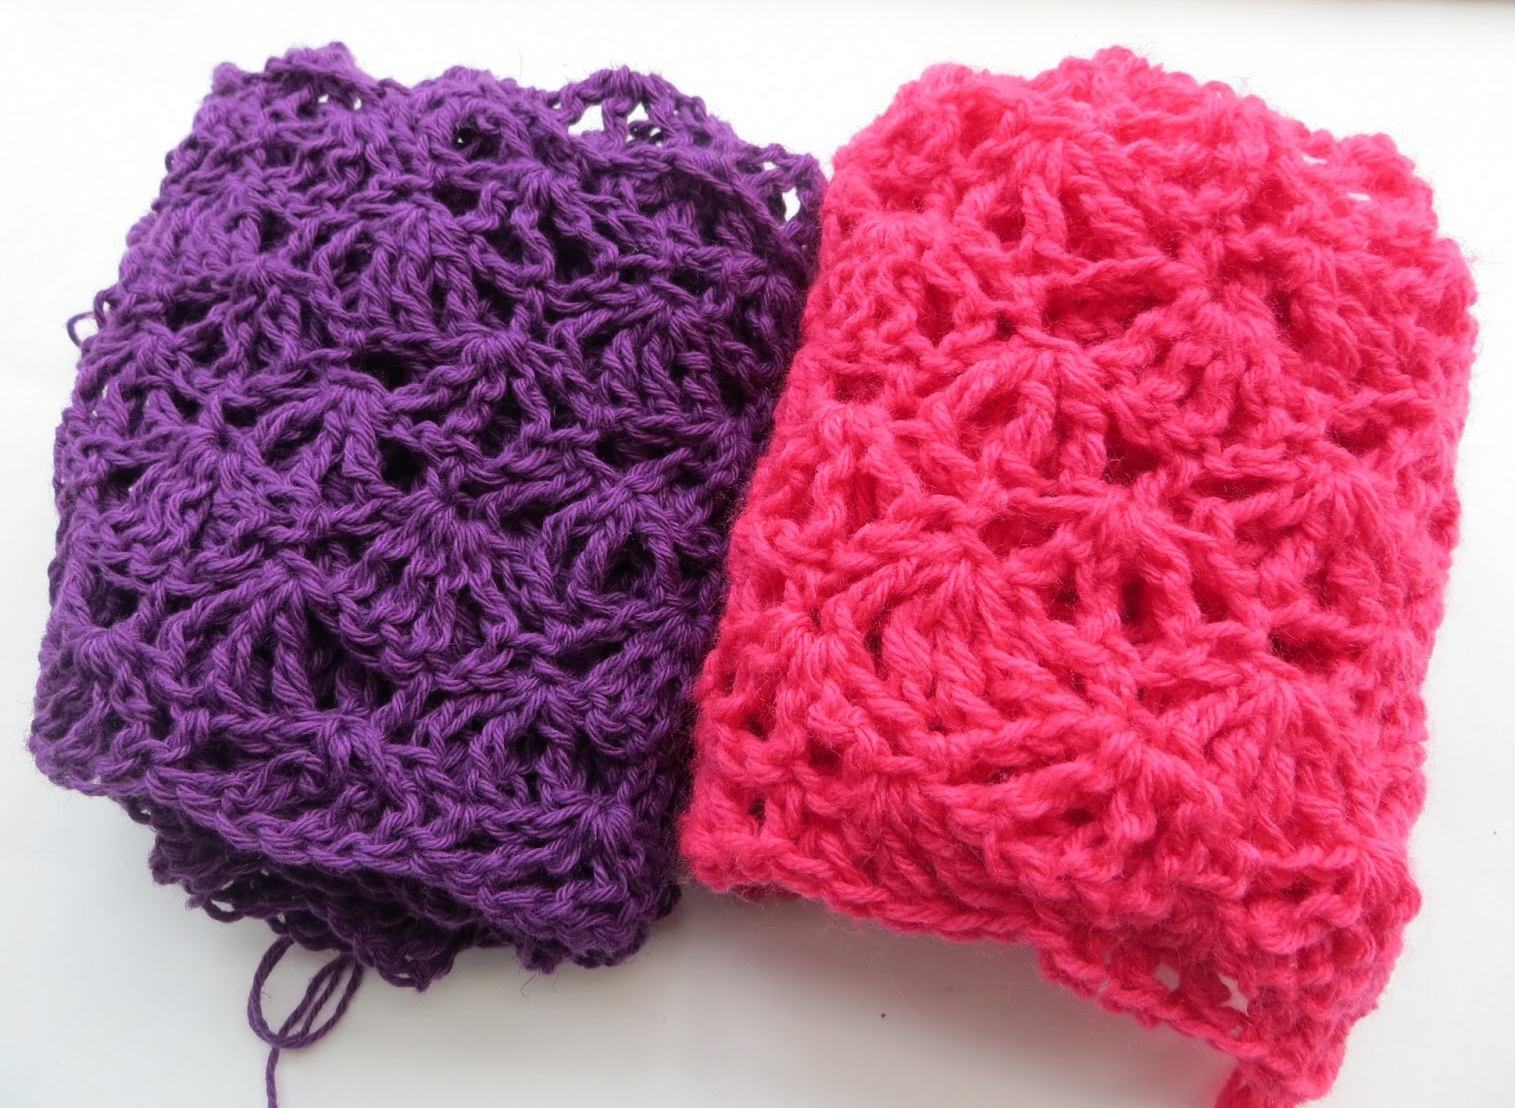 Crochet Dreamz: May 2013